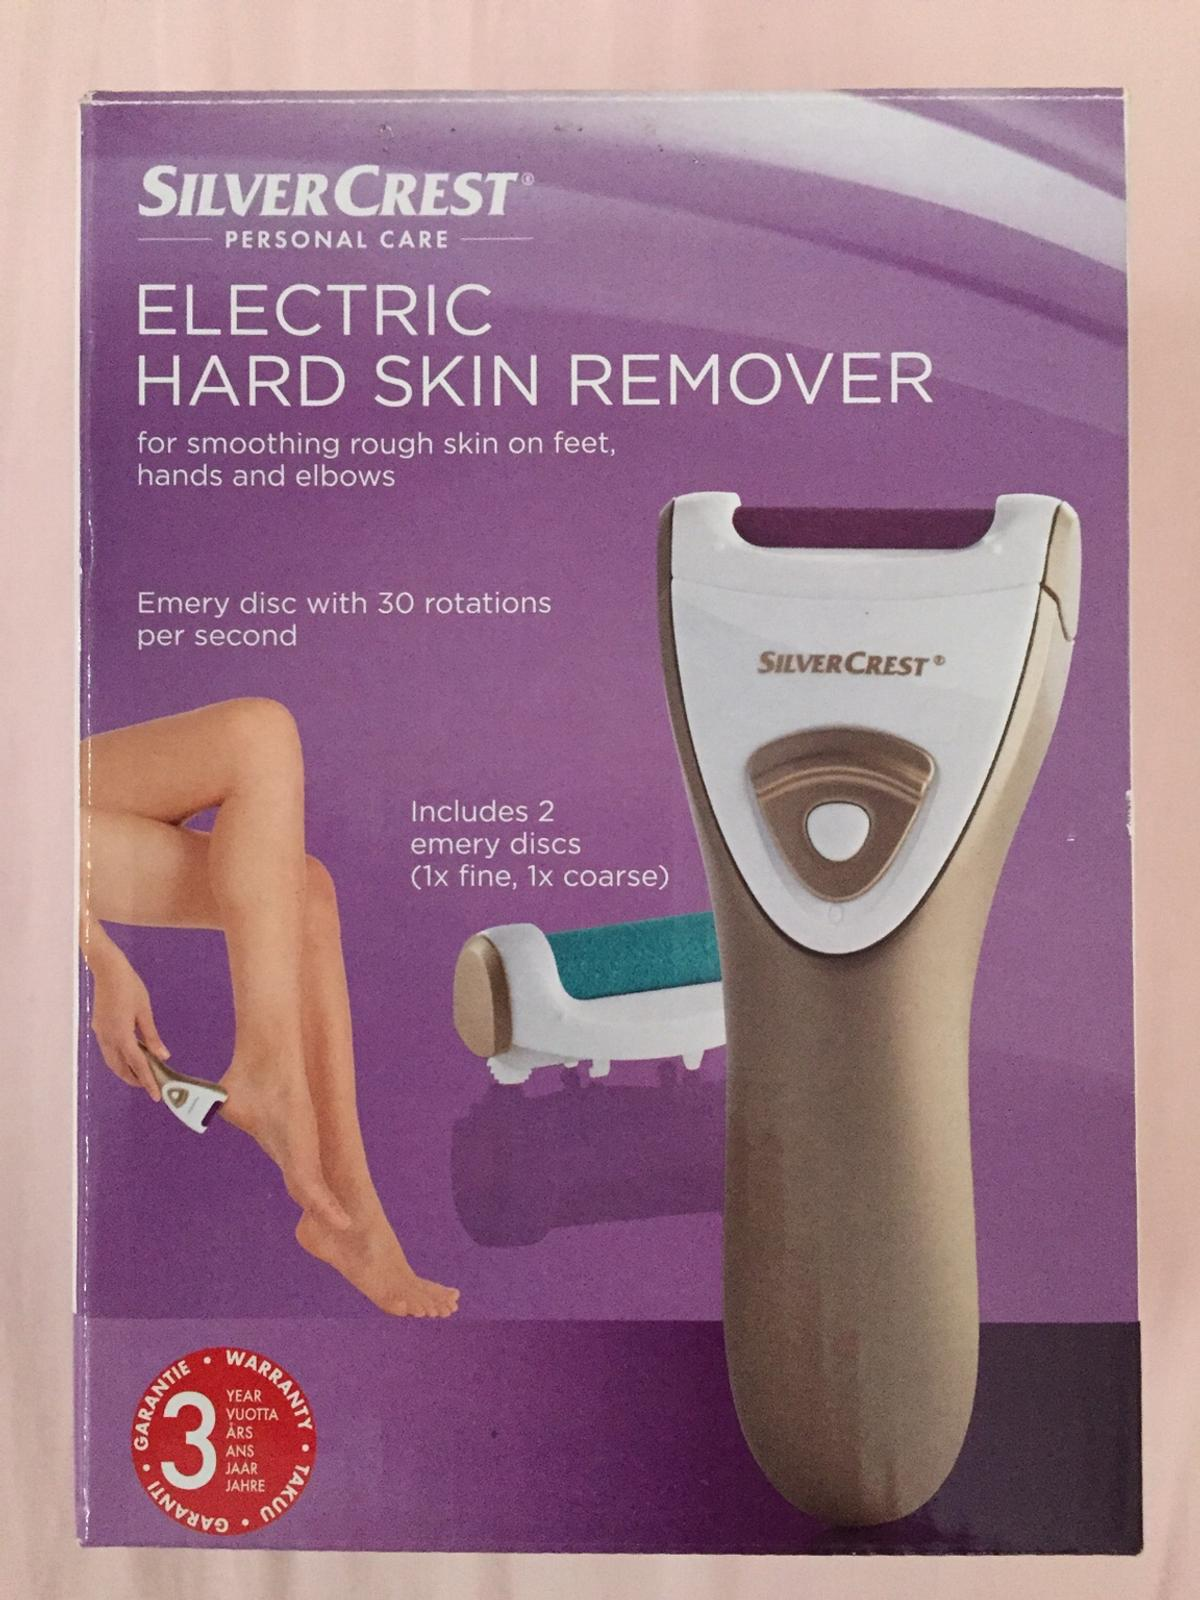 Silver Crest Electric Hard Skin Remover In Cr0 London For 8 00 For Sale Shpock